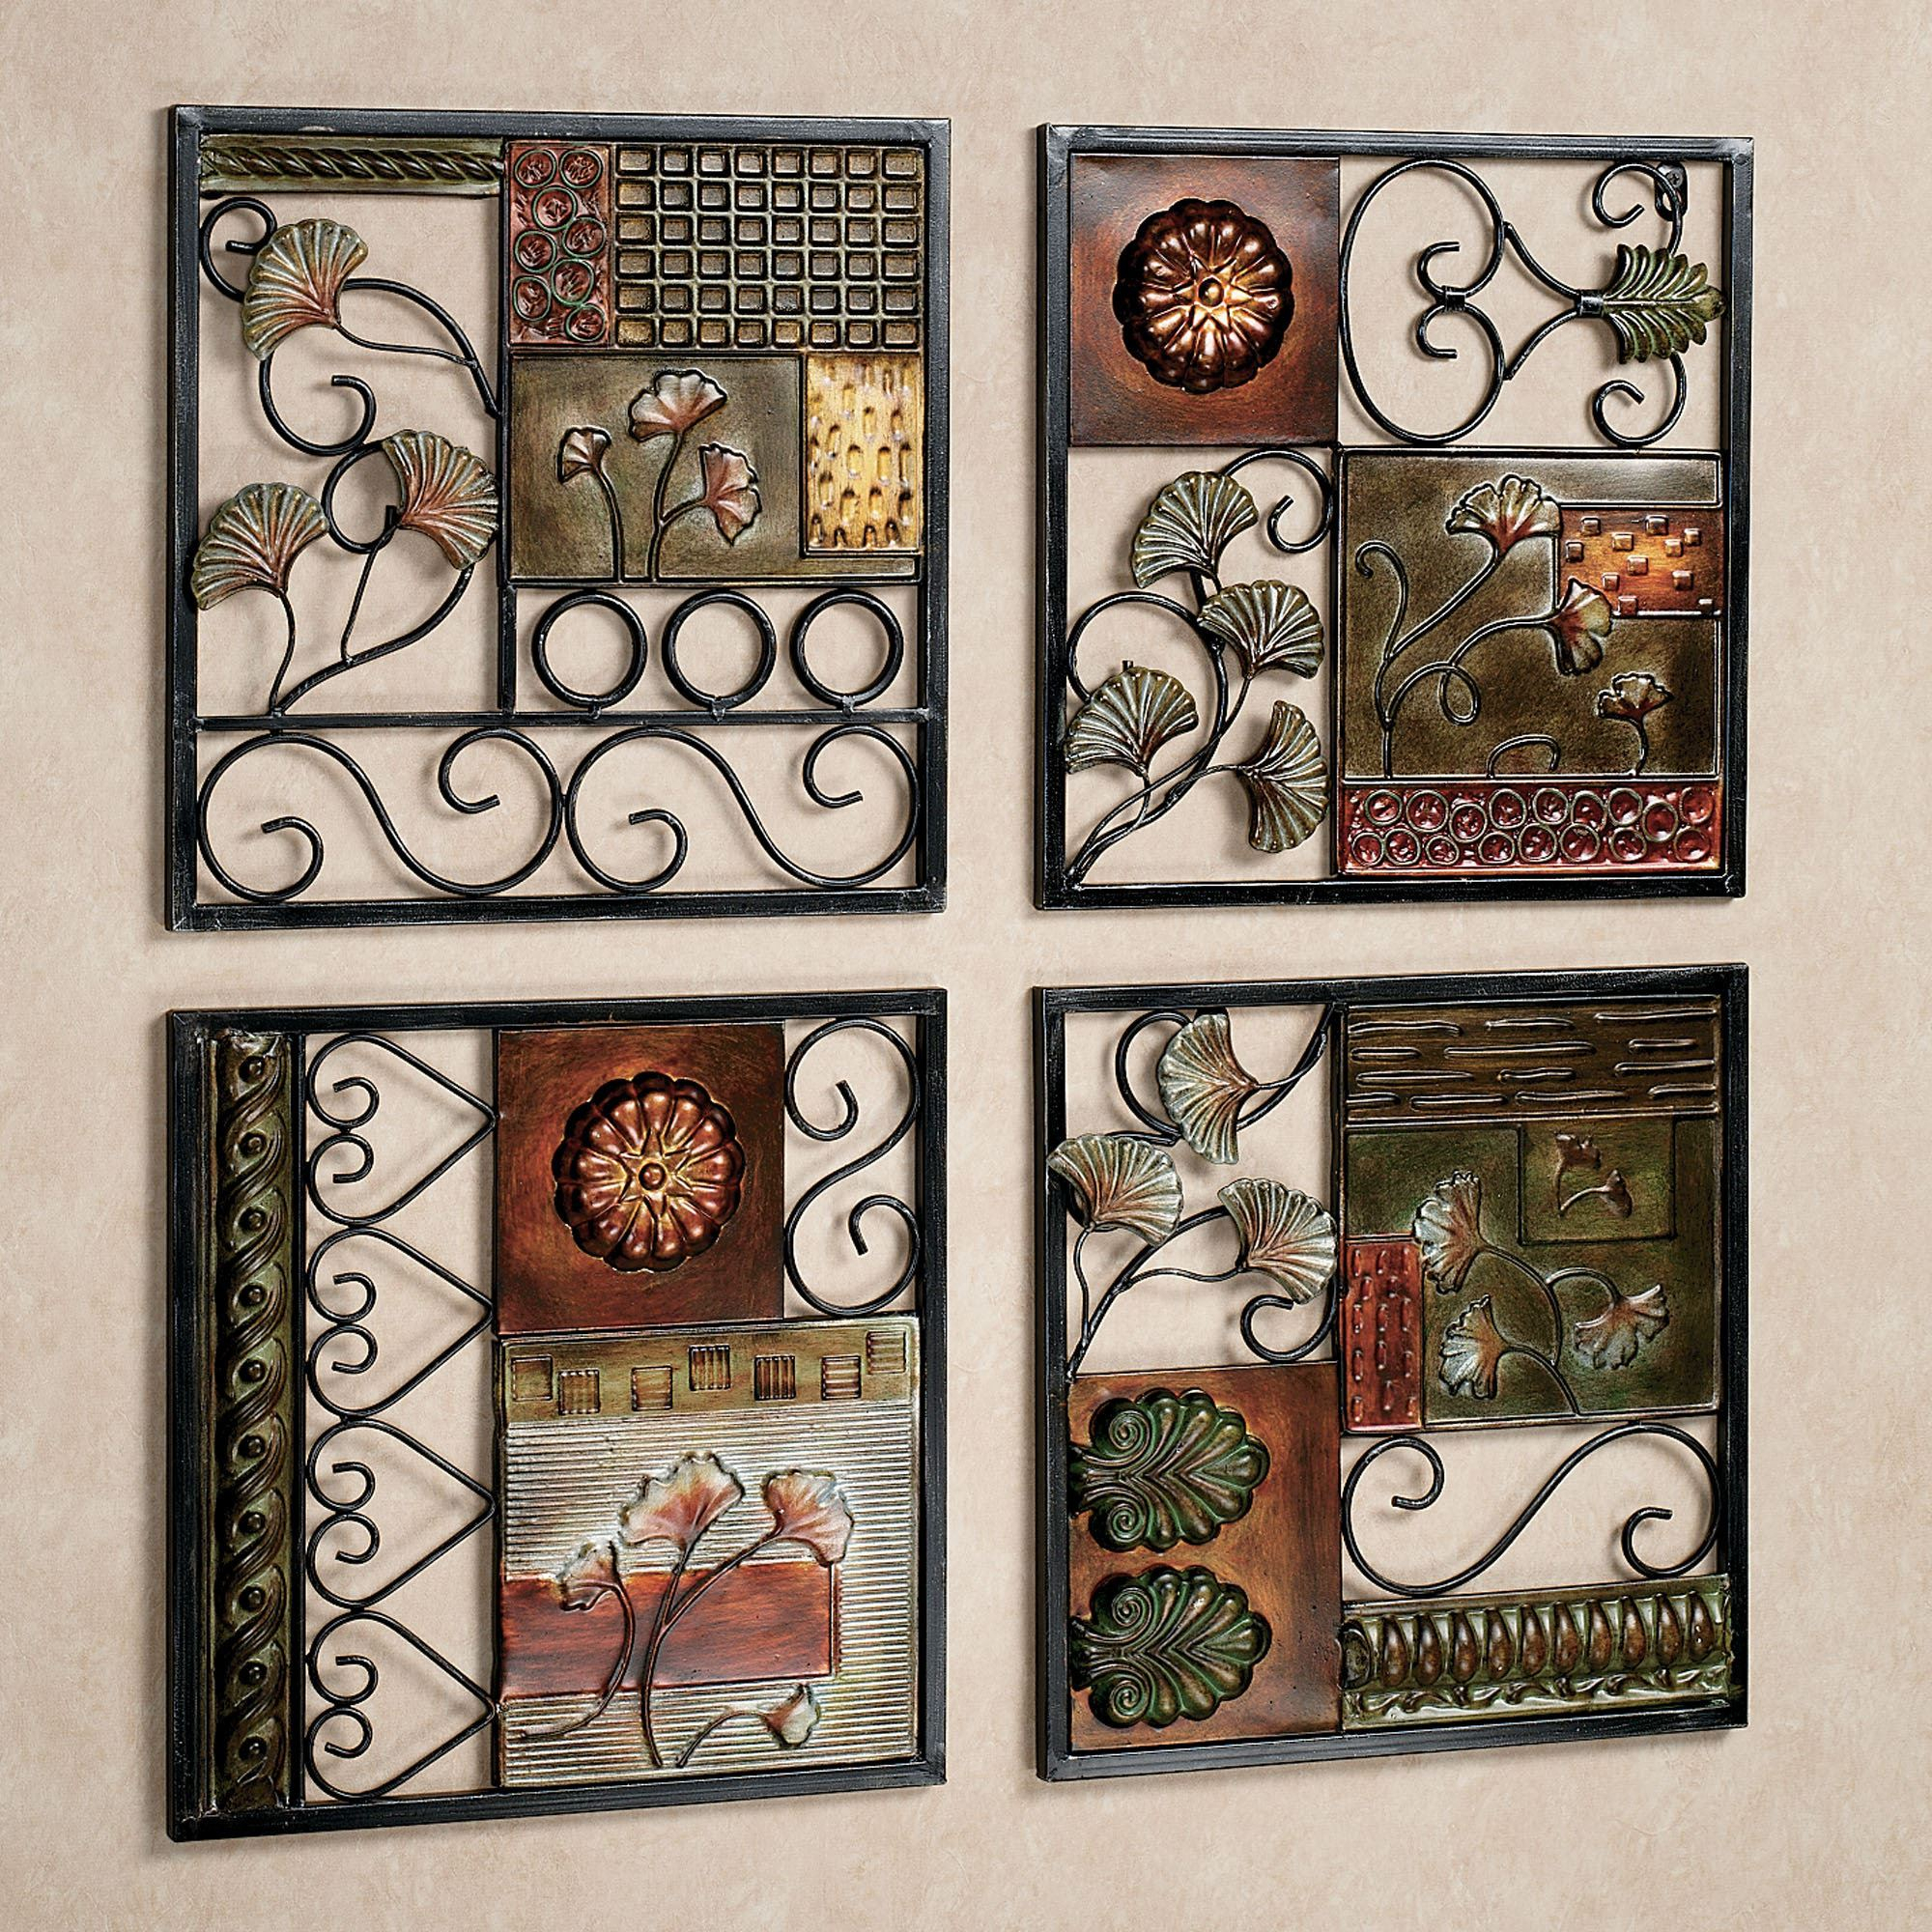 4 Piece Metal Wall Plaque Decor Sets With Regard To Most Current Dusk And Dawn Metal Wall Art Set (Gallery 3 of 20)